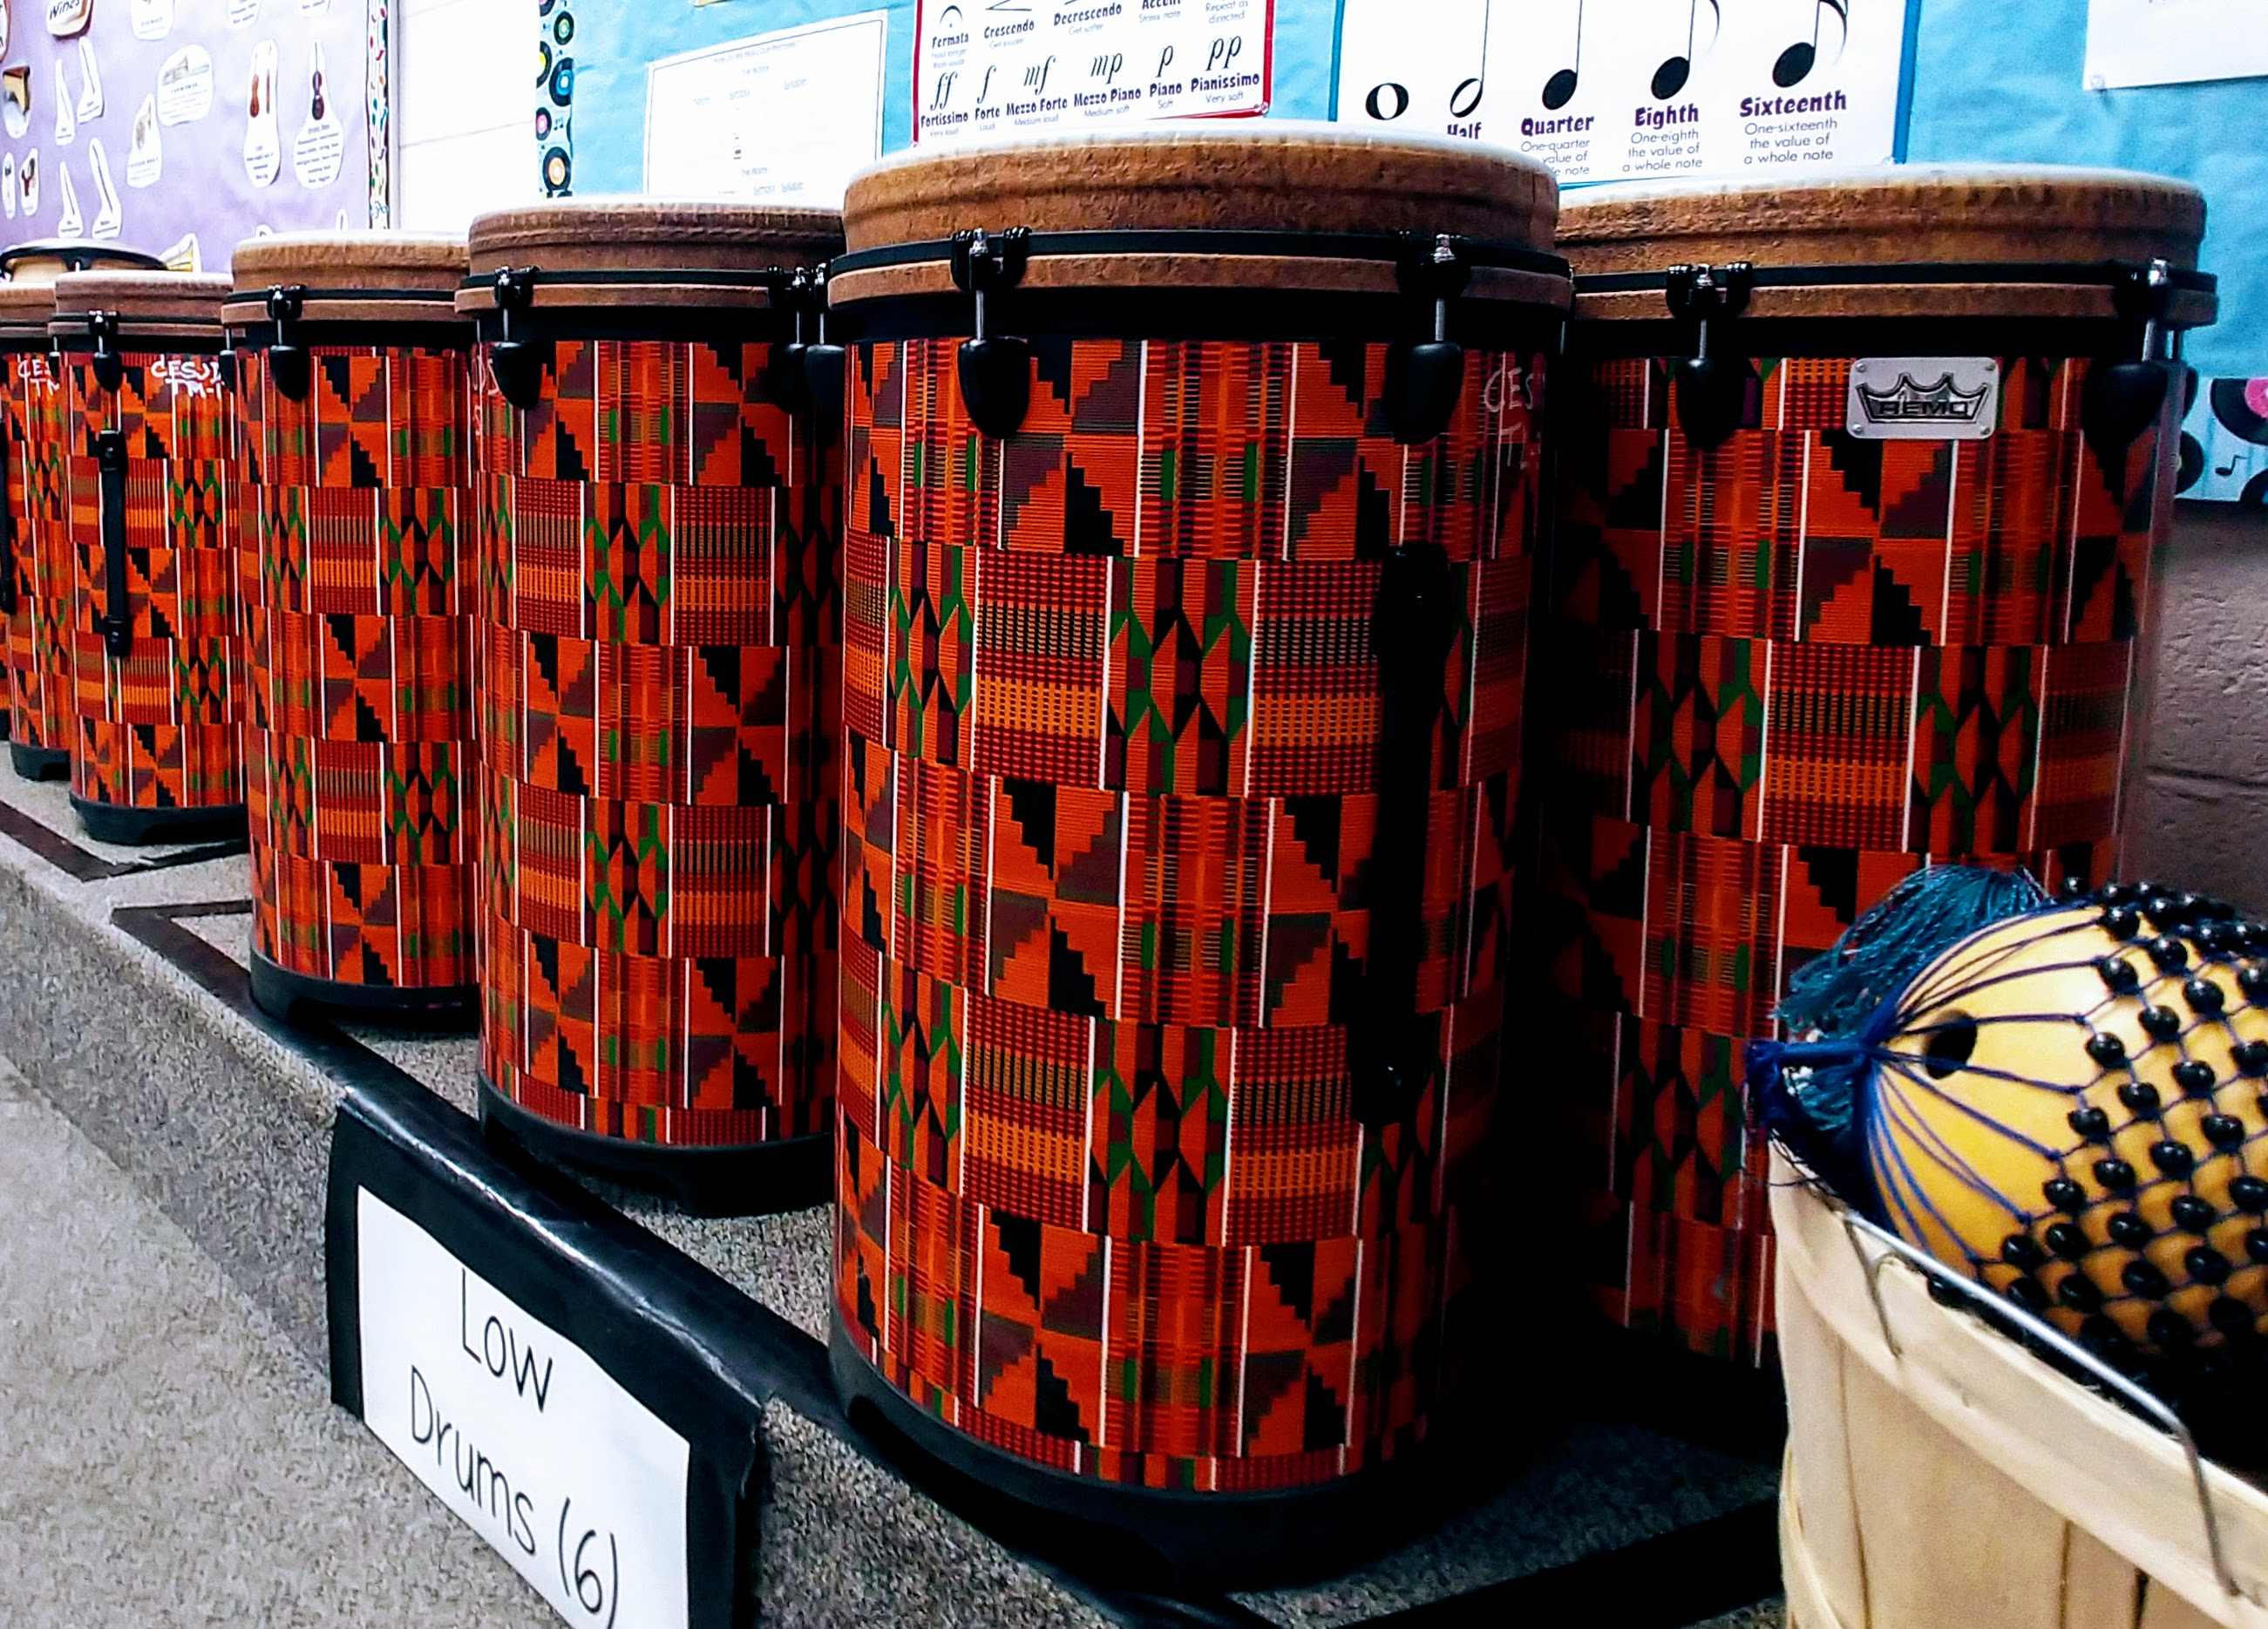 Tumabano Drums (Part of the World Music Drumming curriculum)